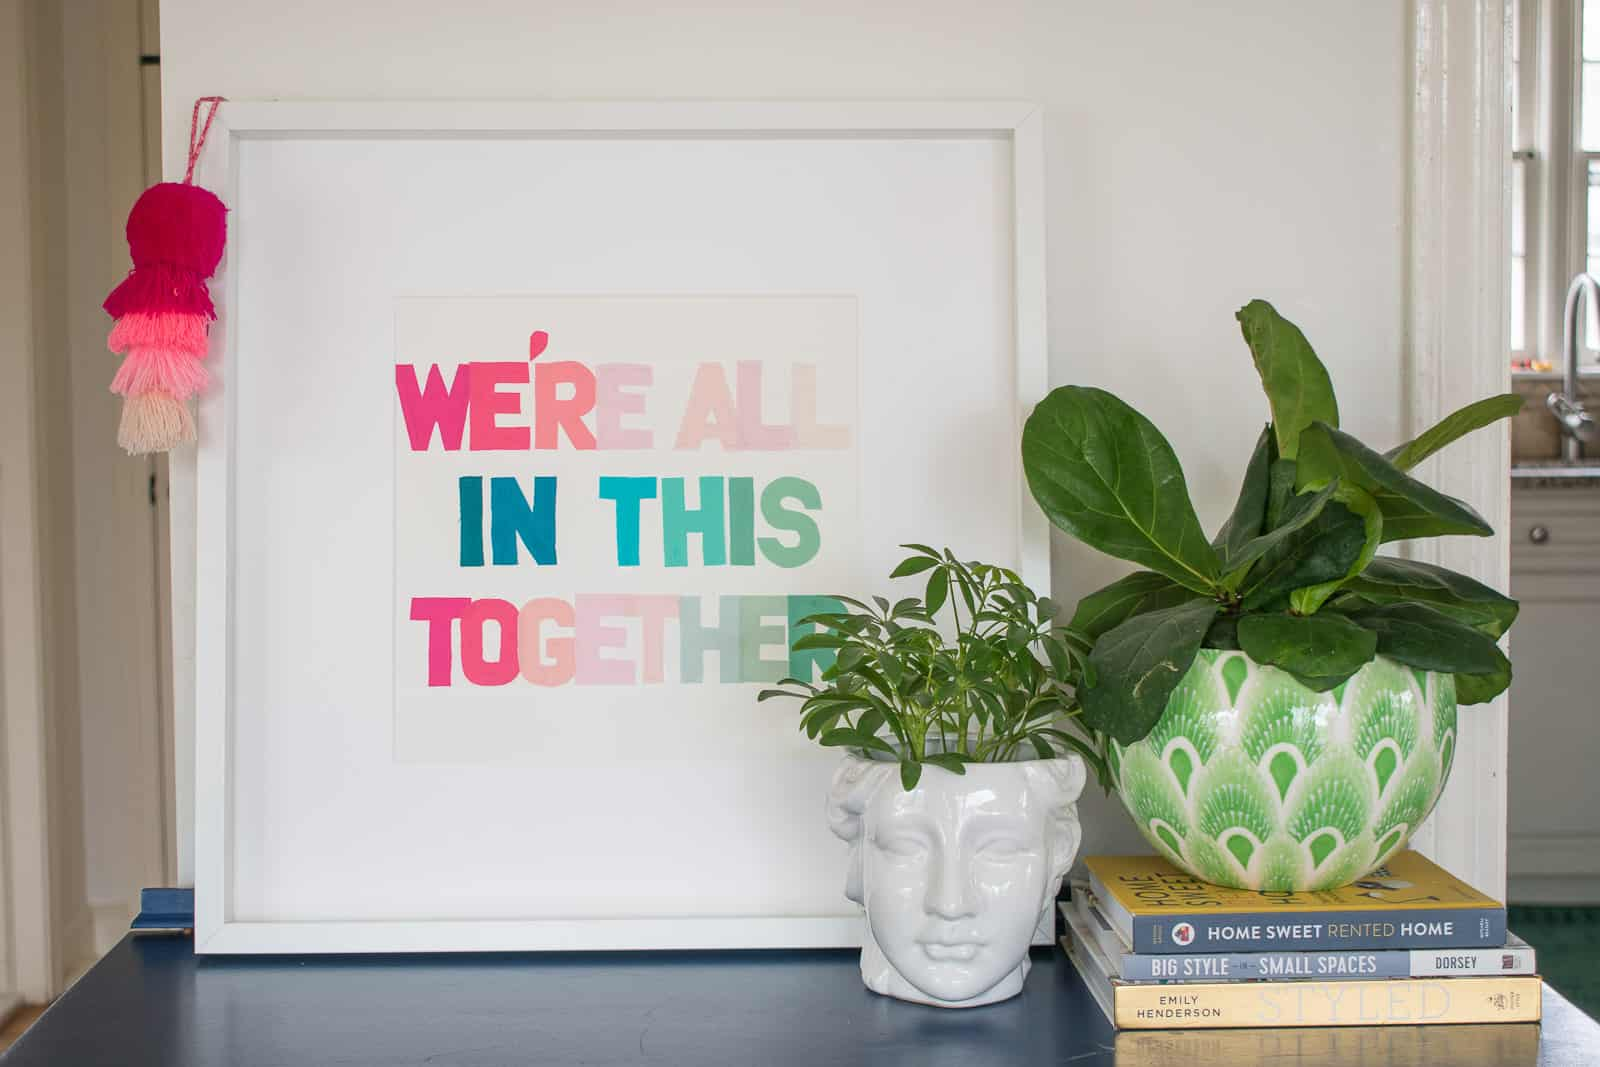 frame and display the quote